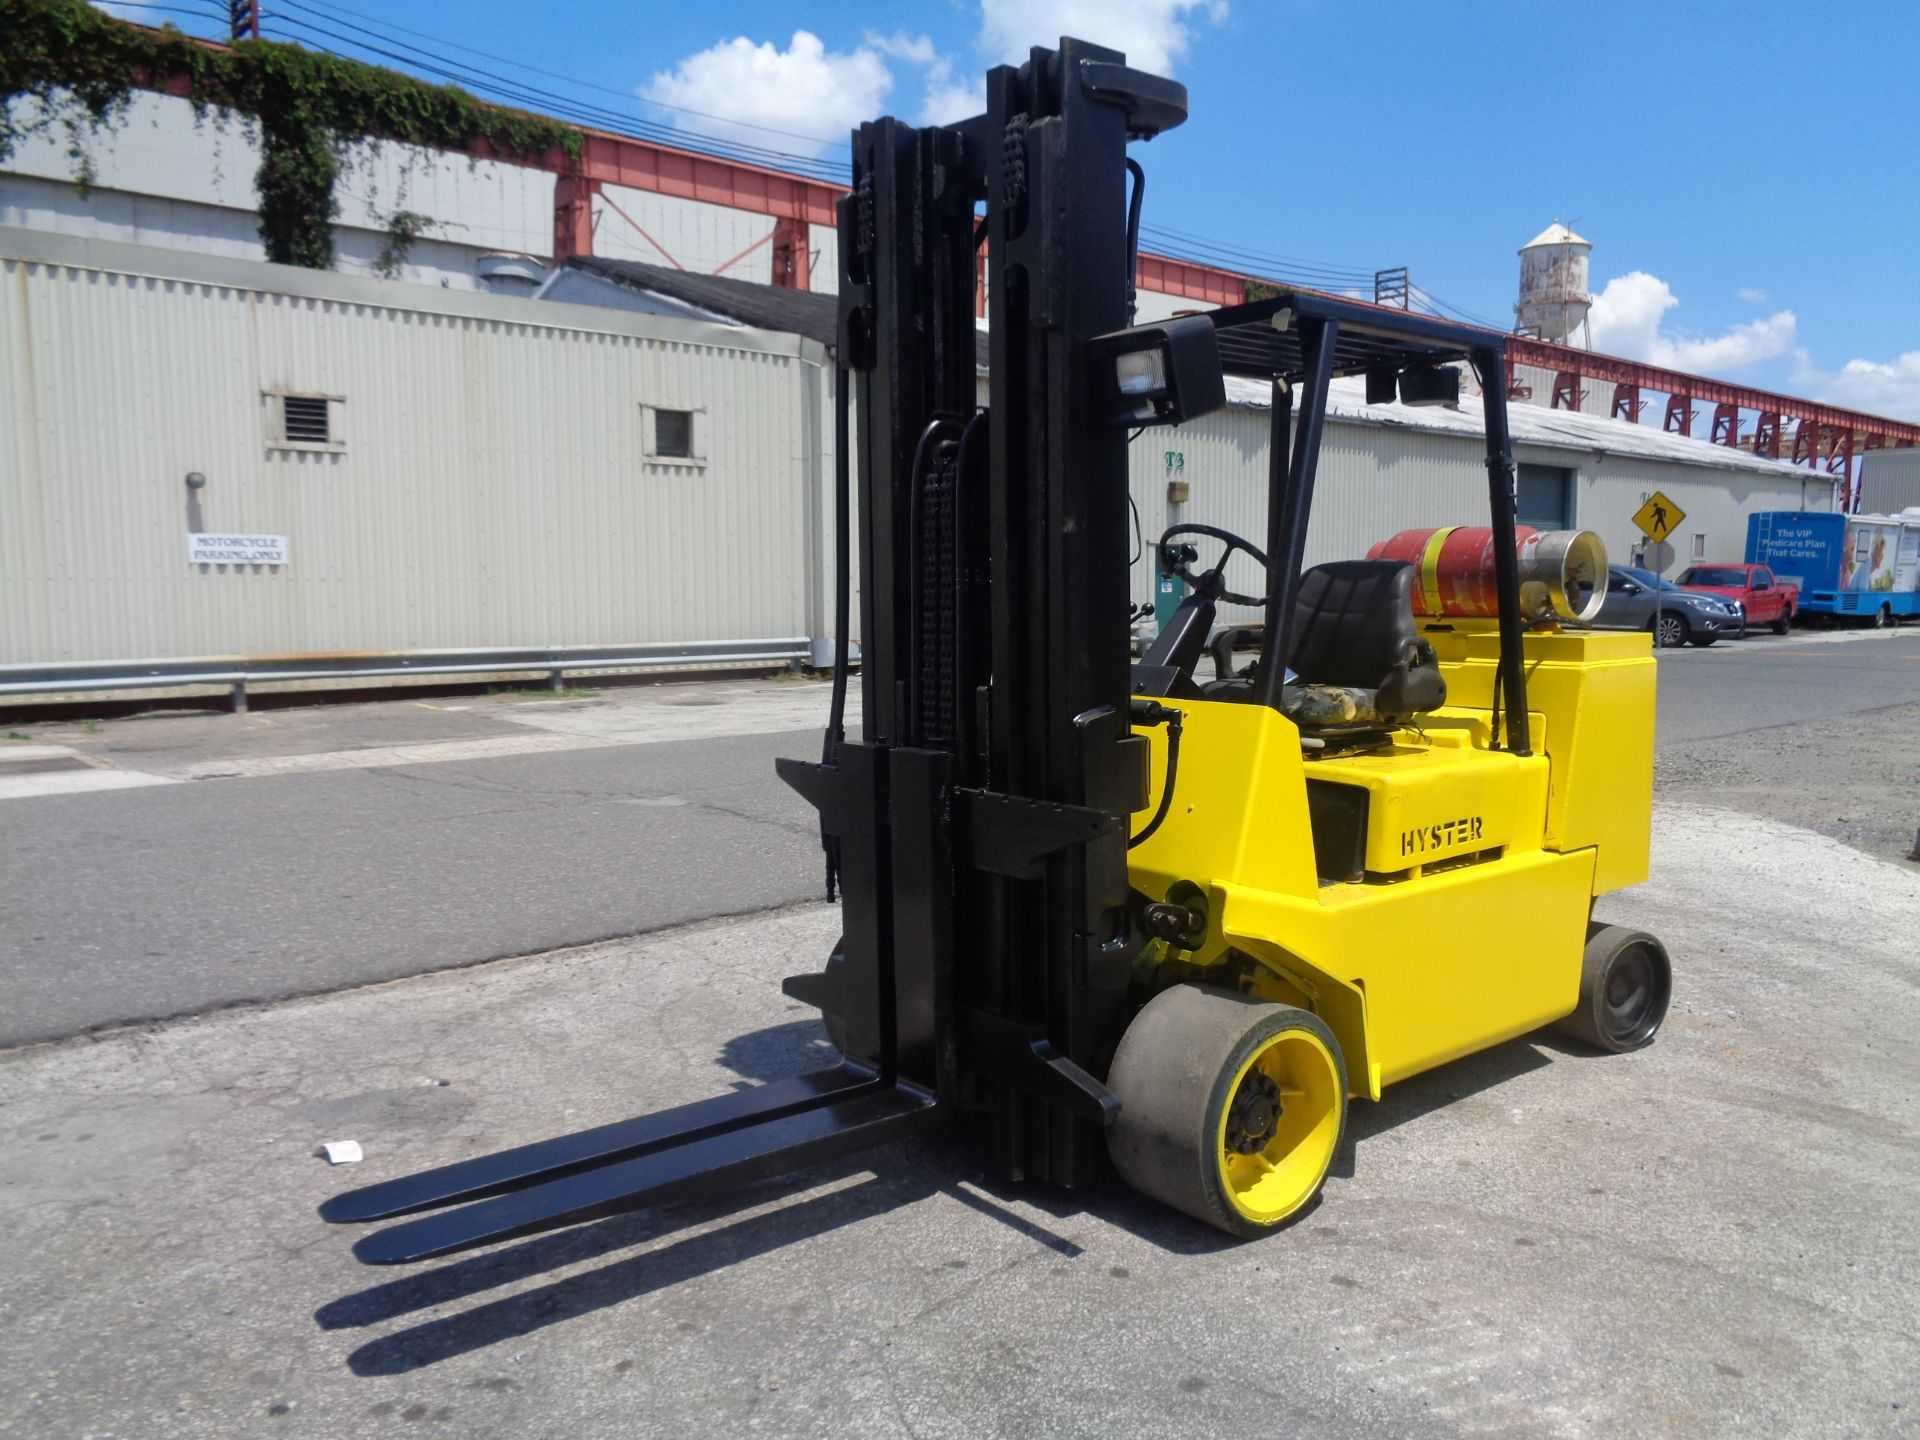 Hyster S120XL 12,000lb Forklift - Image 4 of 14